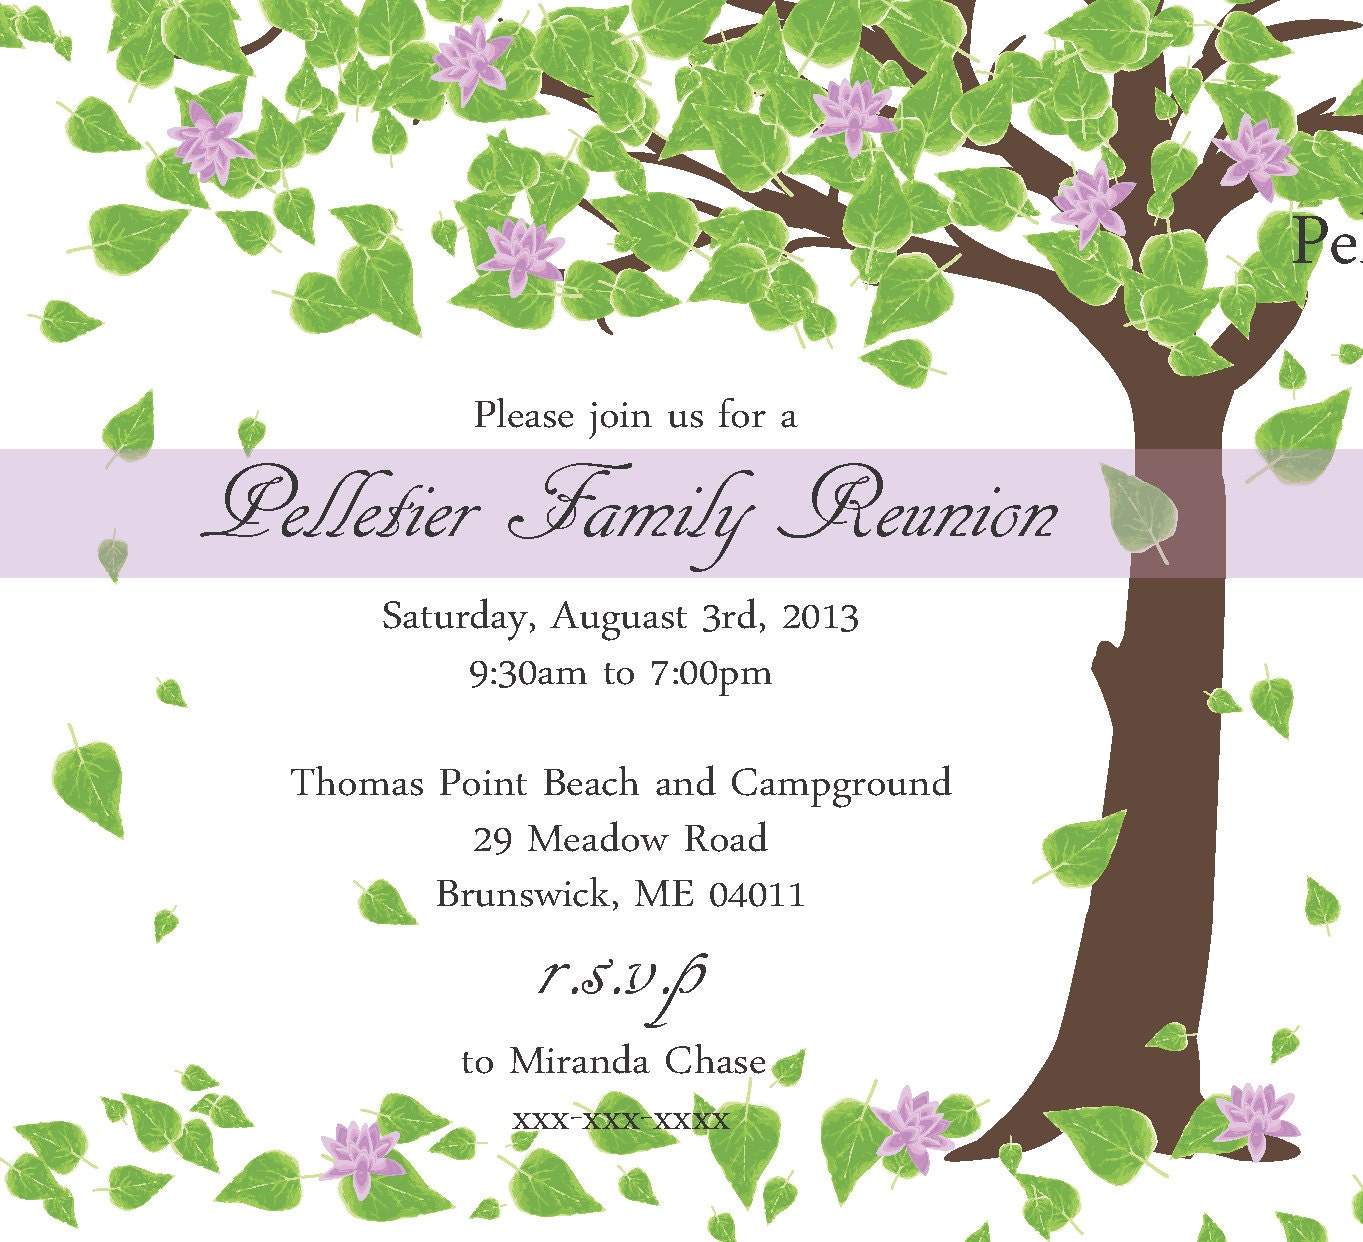 Reunion invitation – Reunion Invitation Template